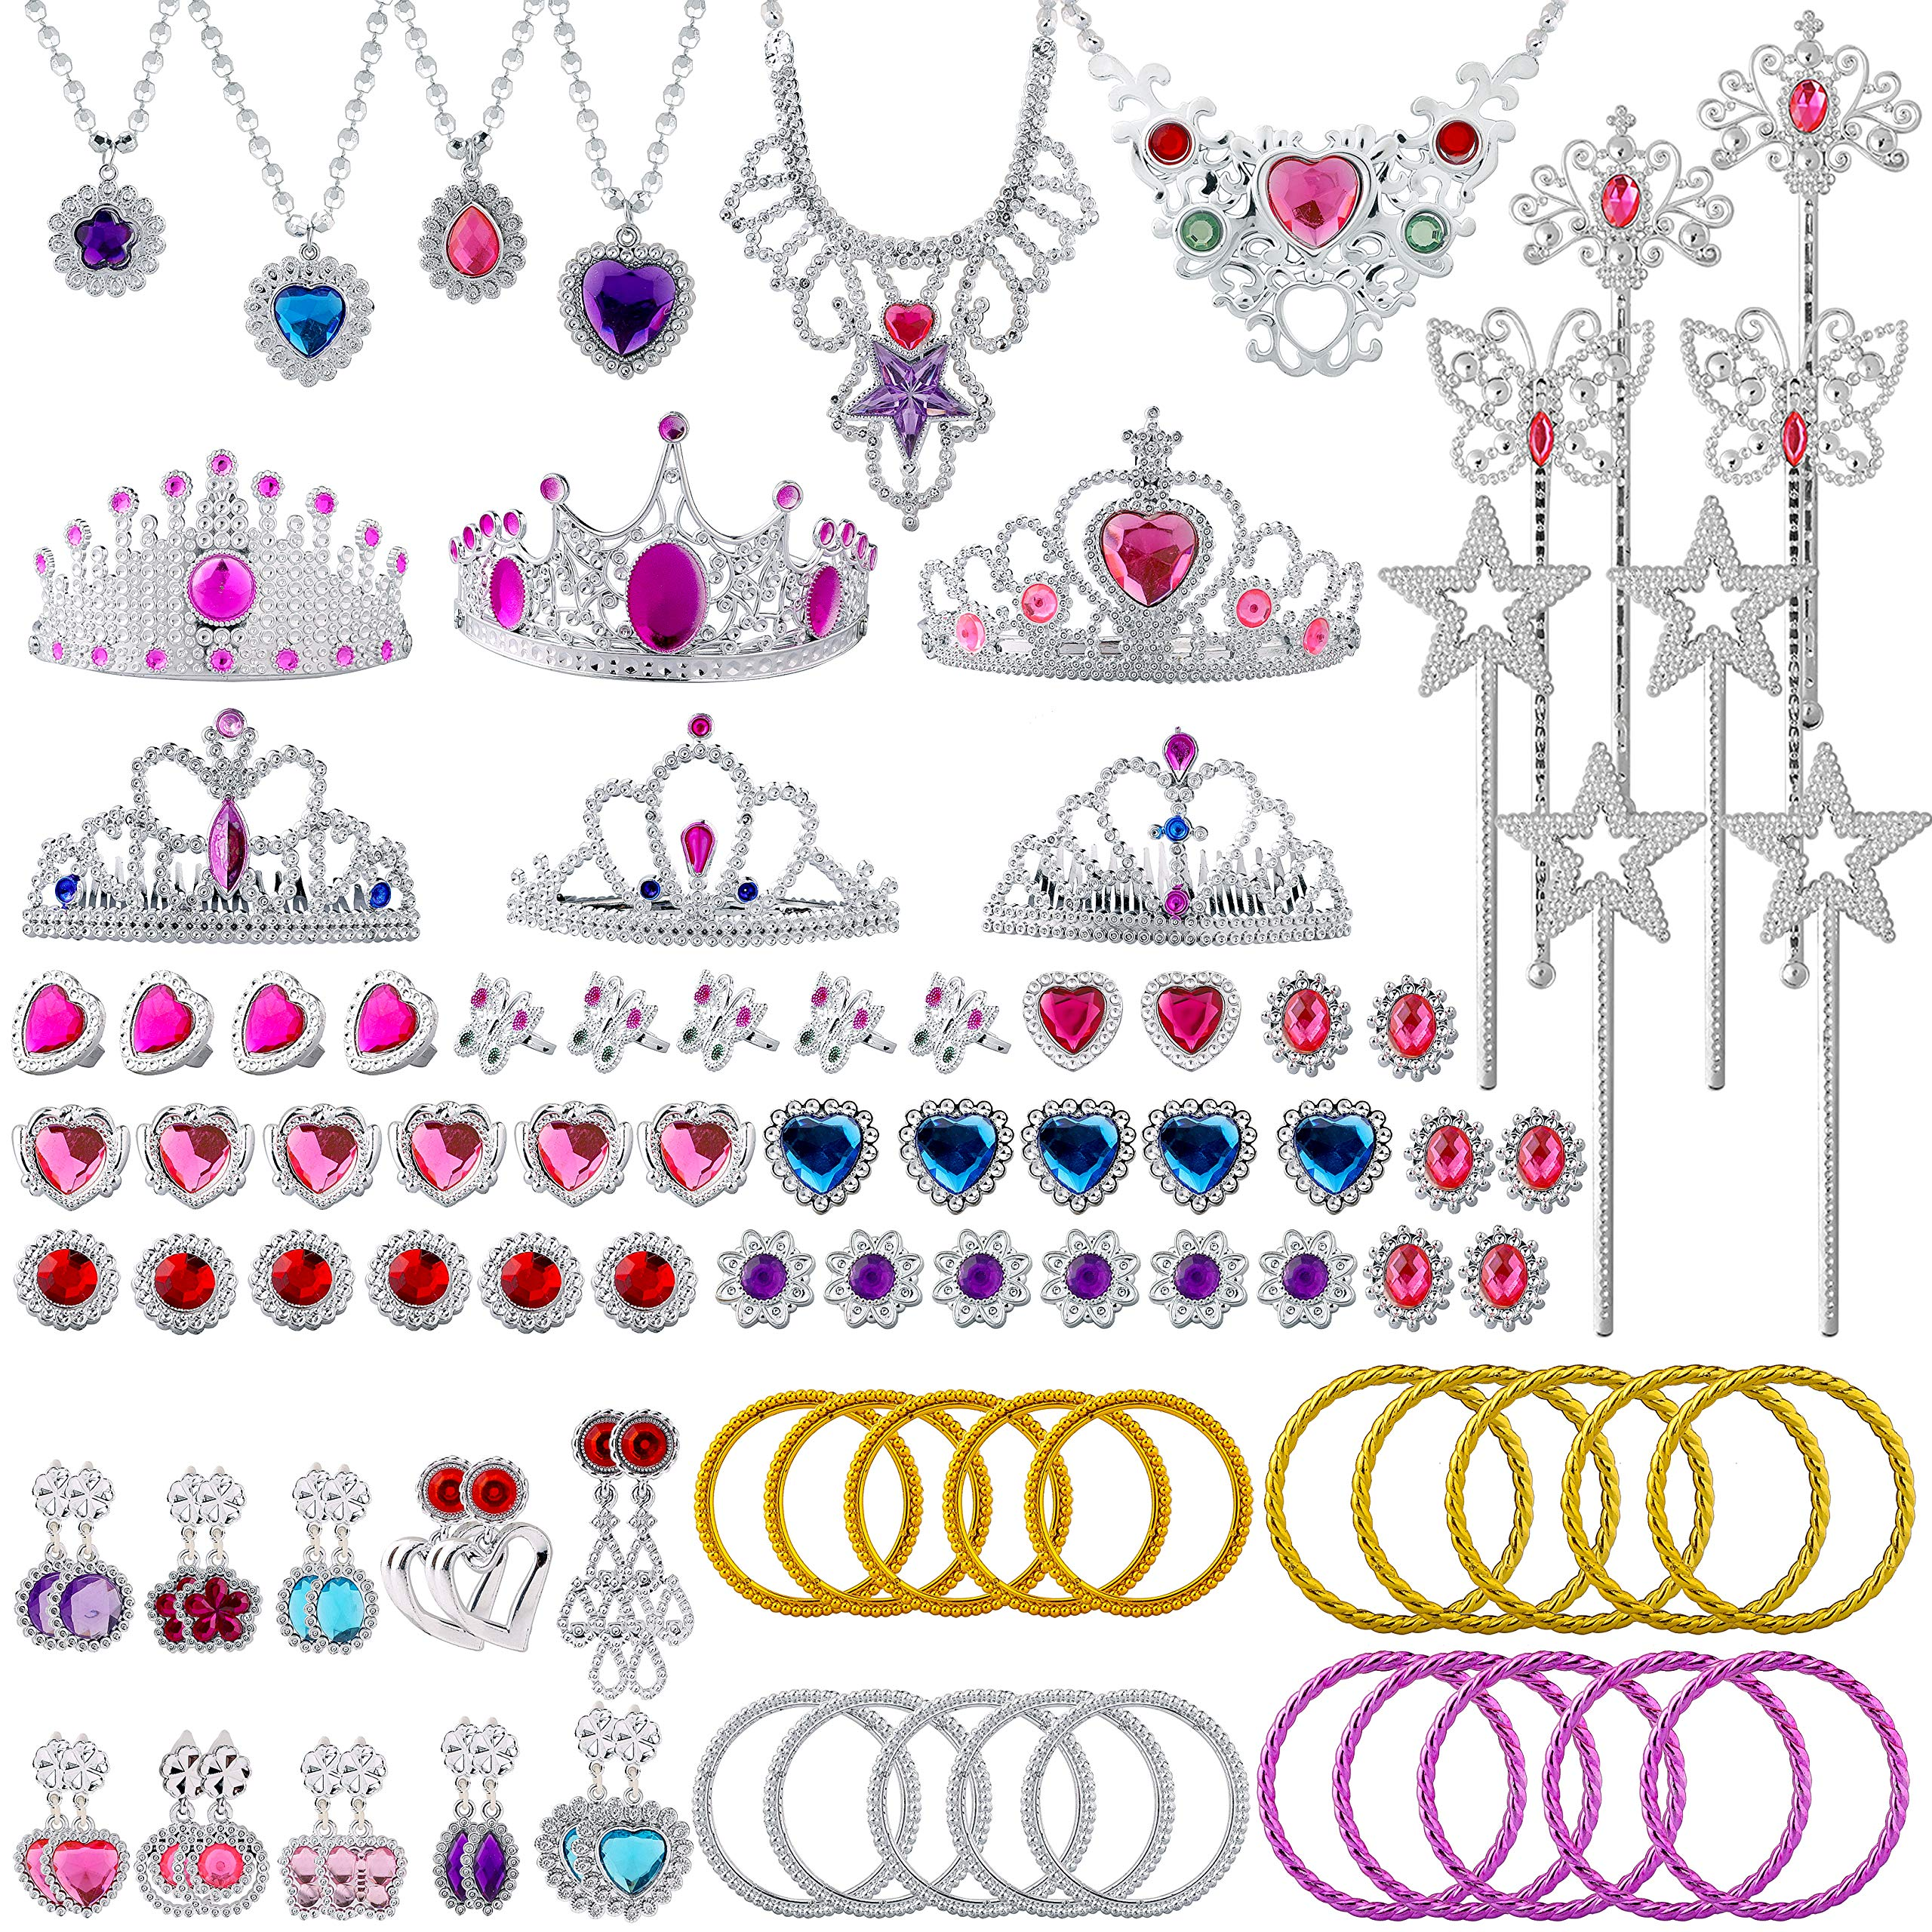 BeYumi 100 Pack Princess Pretend Jewelry Toy, Girl Princess Pretend Dress Up Set, Include Crowns, Necklaces, Wands, Rings, Earrings and Bracelets, Jewelry Gift Play Toys for Girls Kids Birthday Party